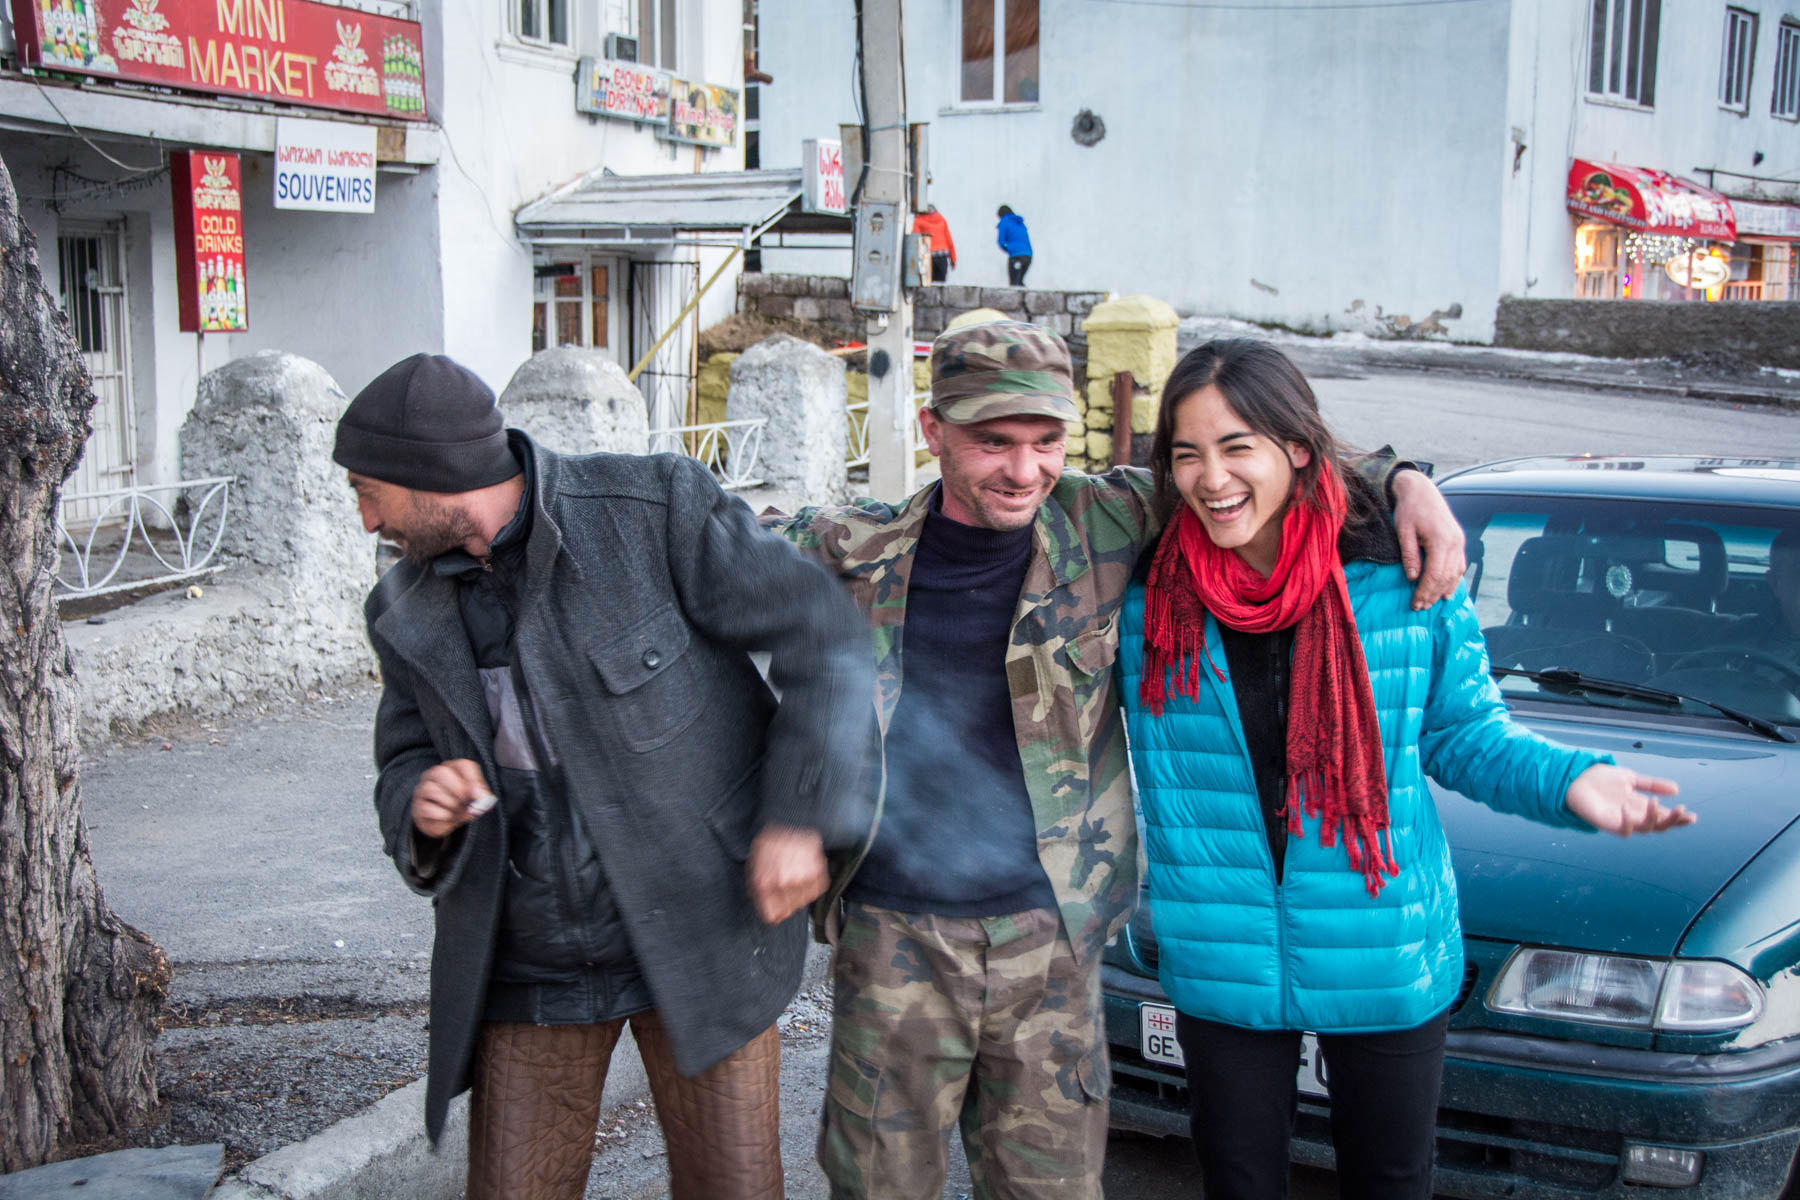 Dying/laughing with our hitchhiking companions in Kazbegi, Georgia